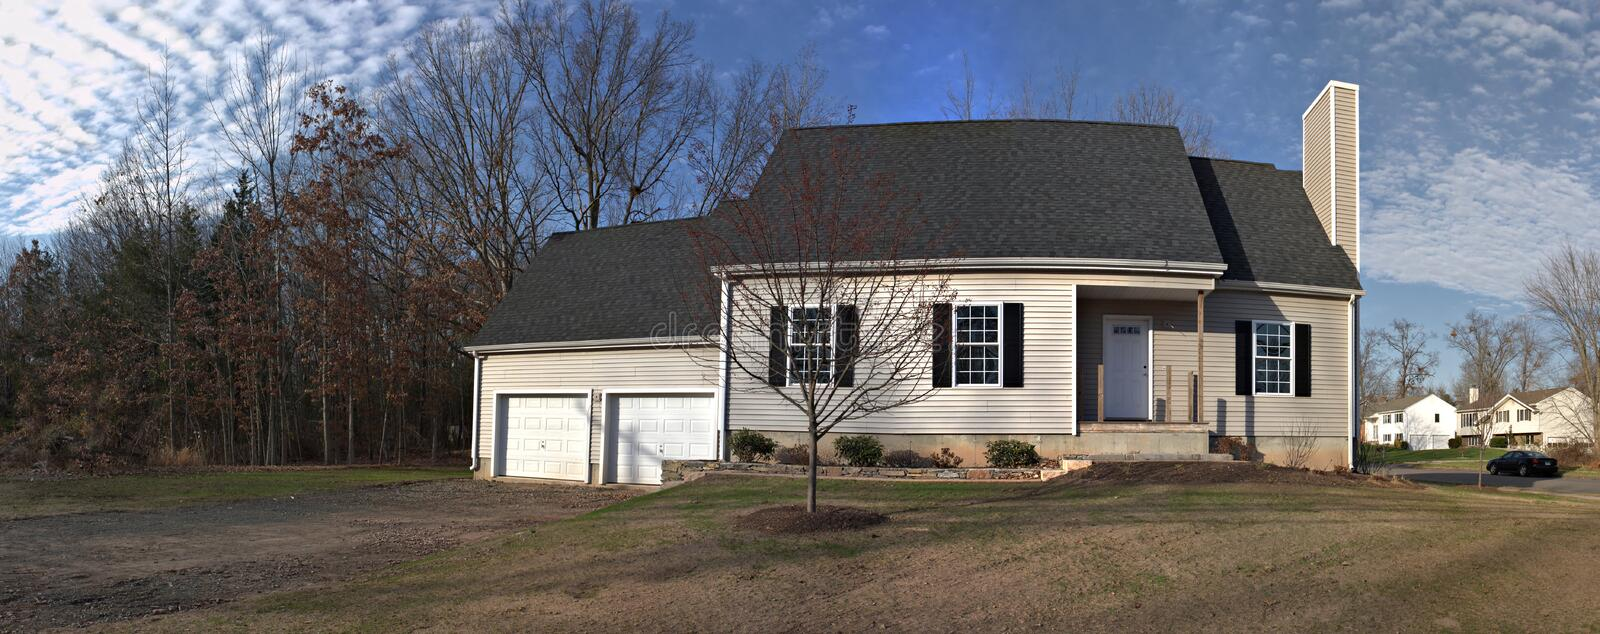 Residential House Panorama Royalty Free Stock Photo